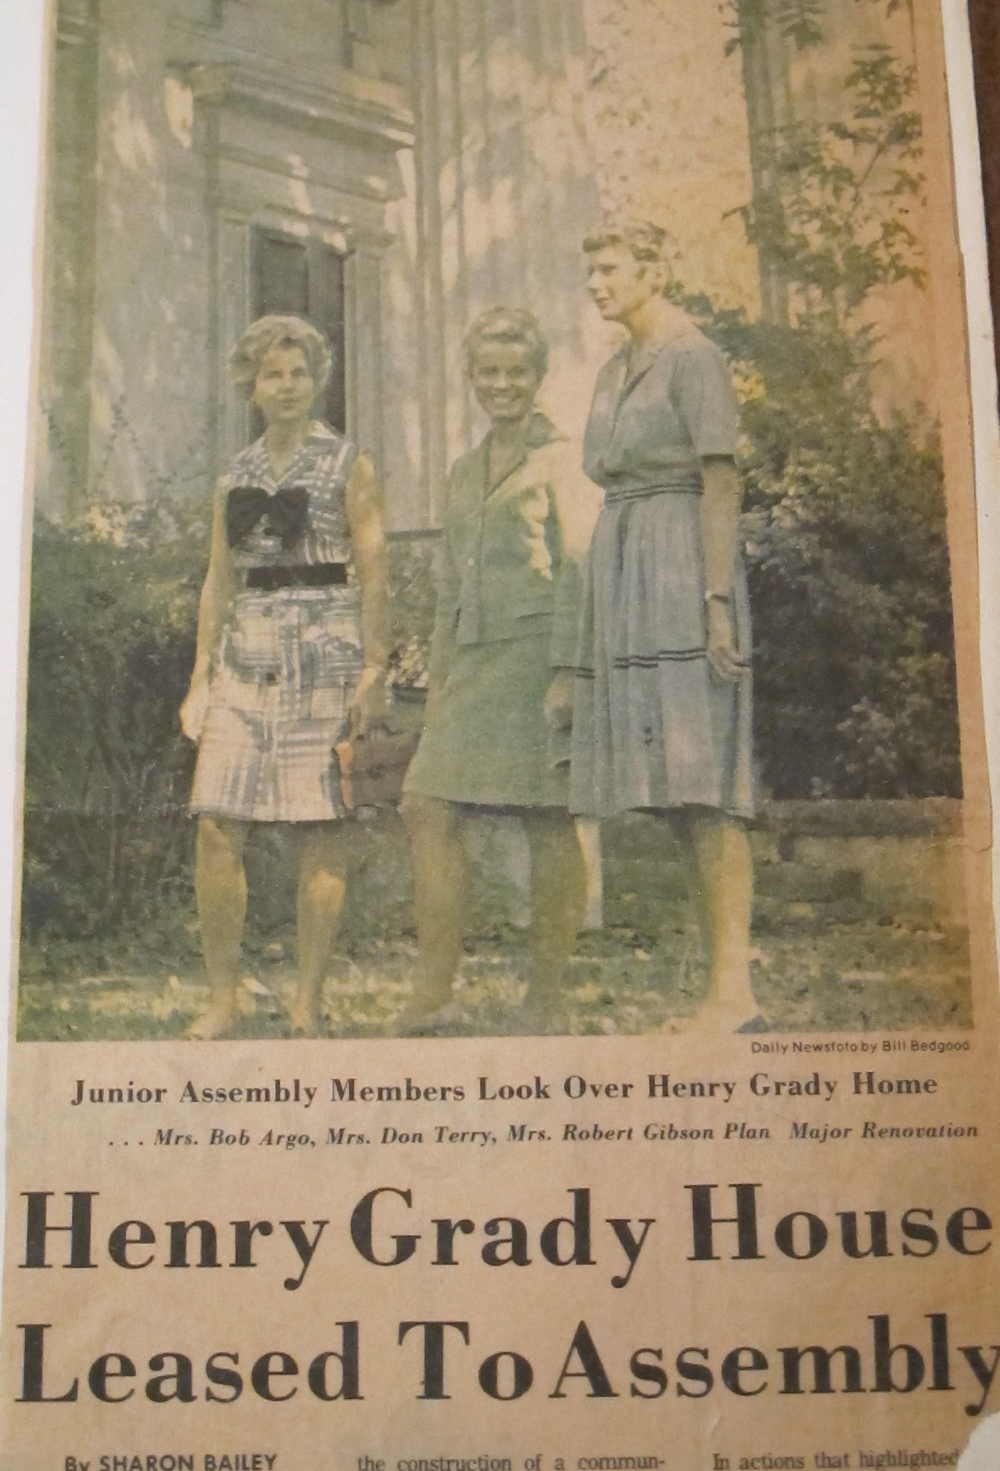 The assembly became the stewards of the Taylor Grady House in 1968.